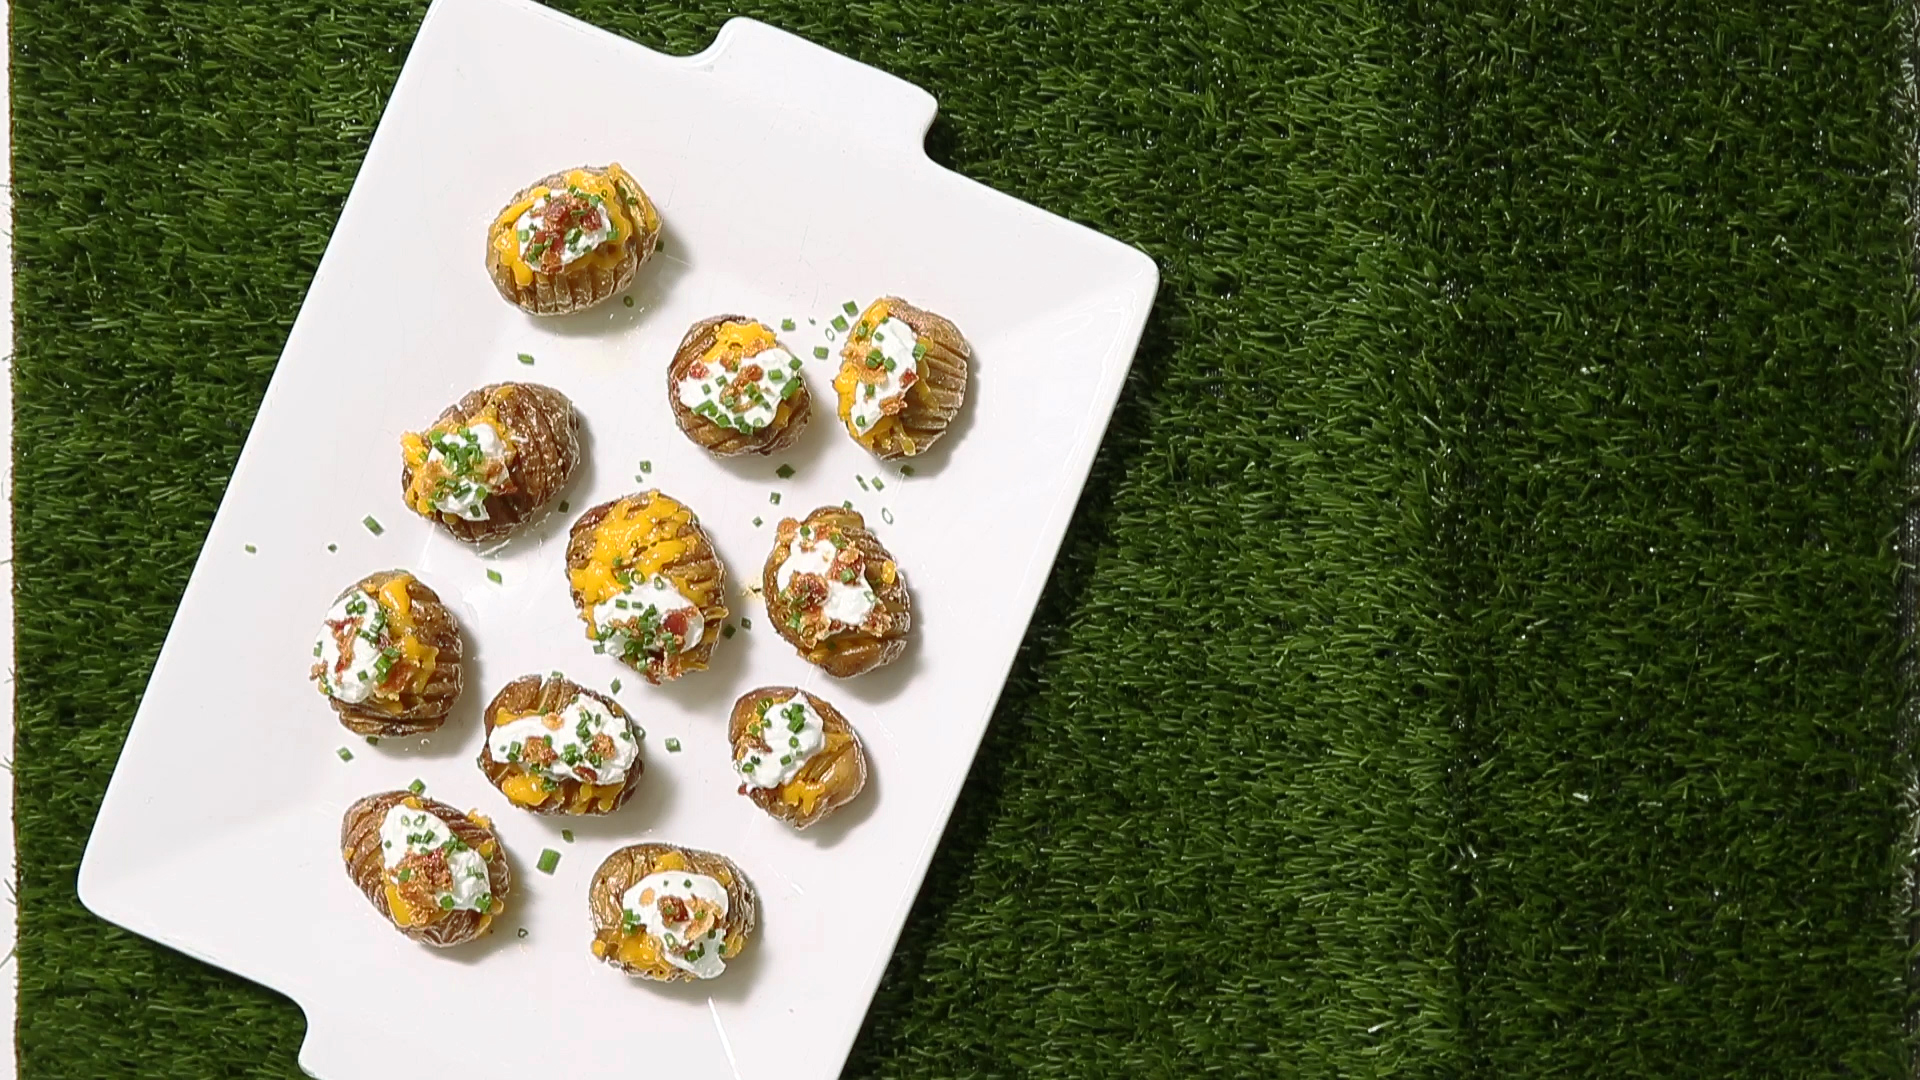 How to Make Mini Football Potatoes